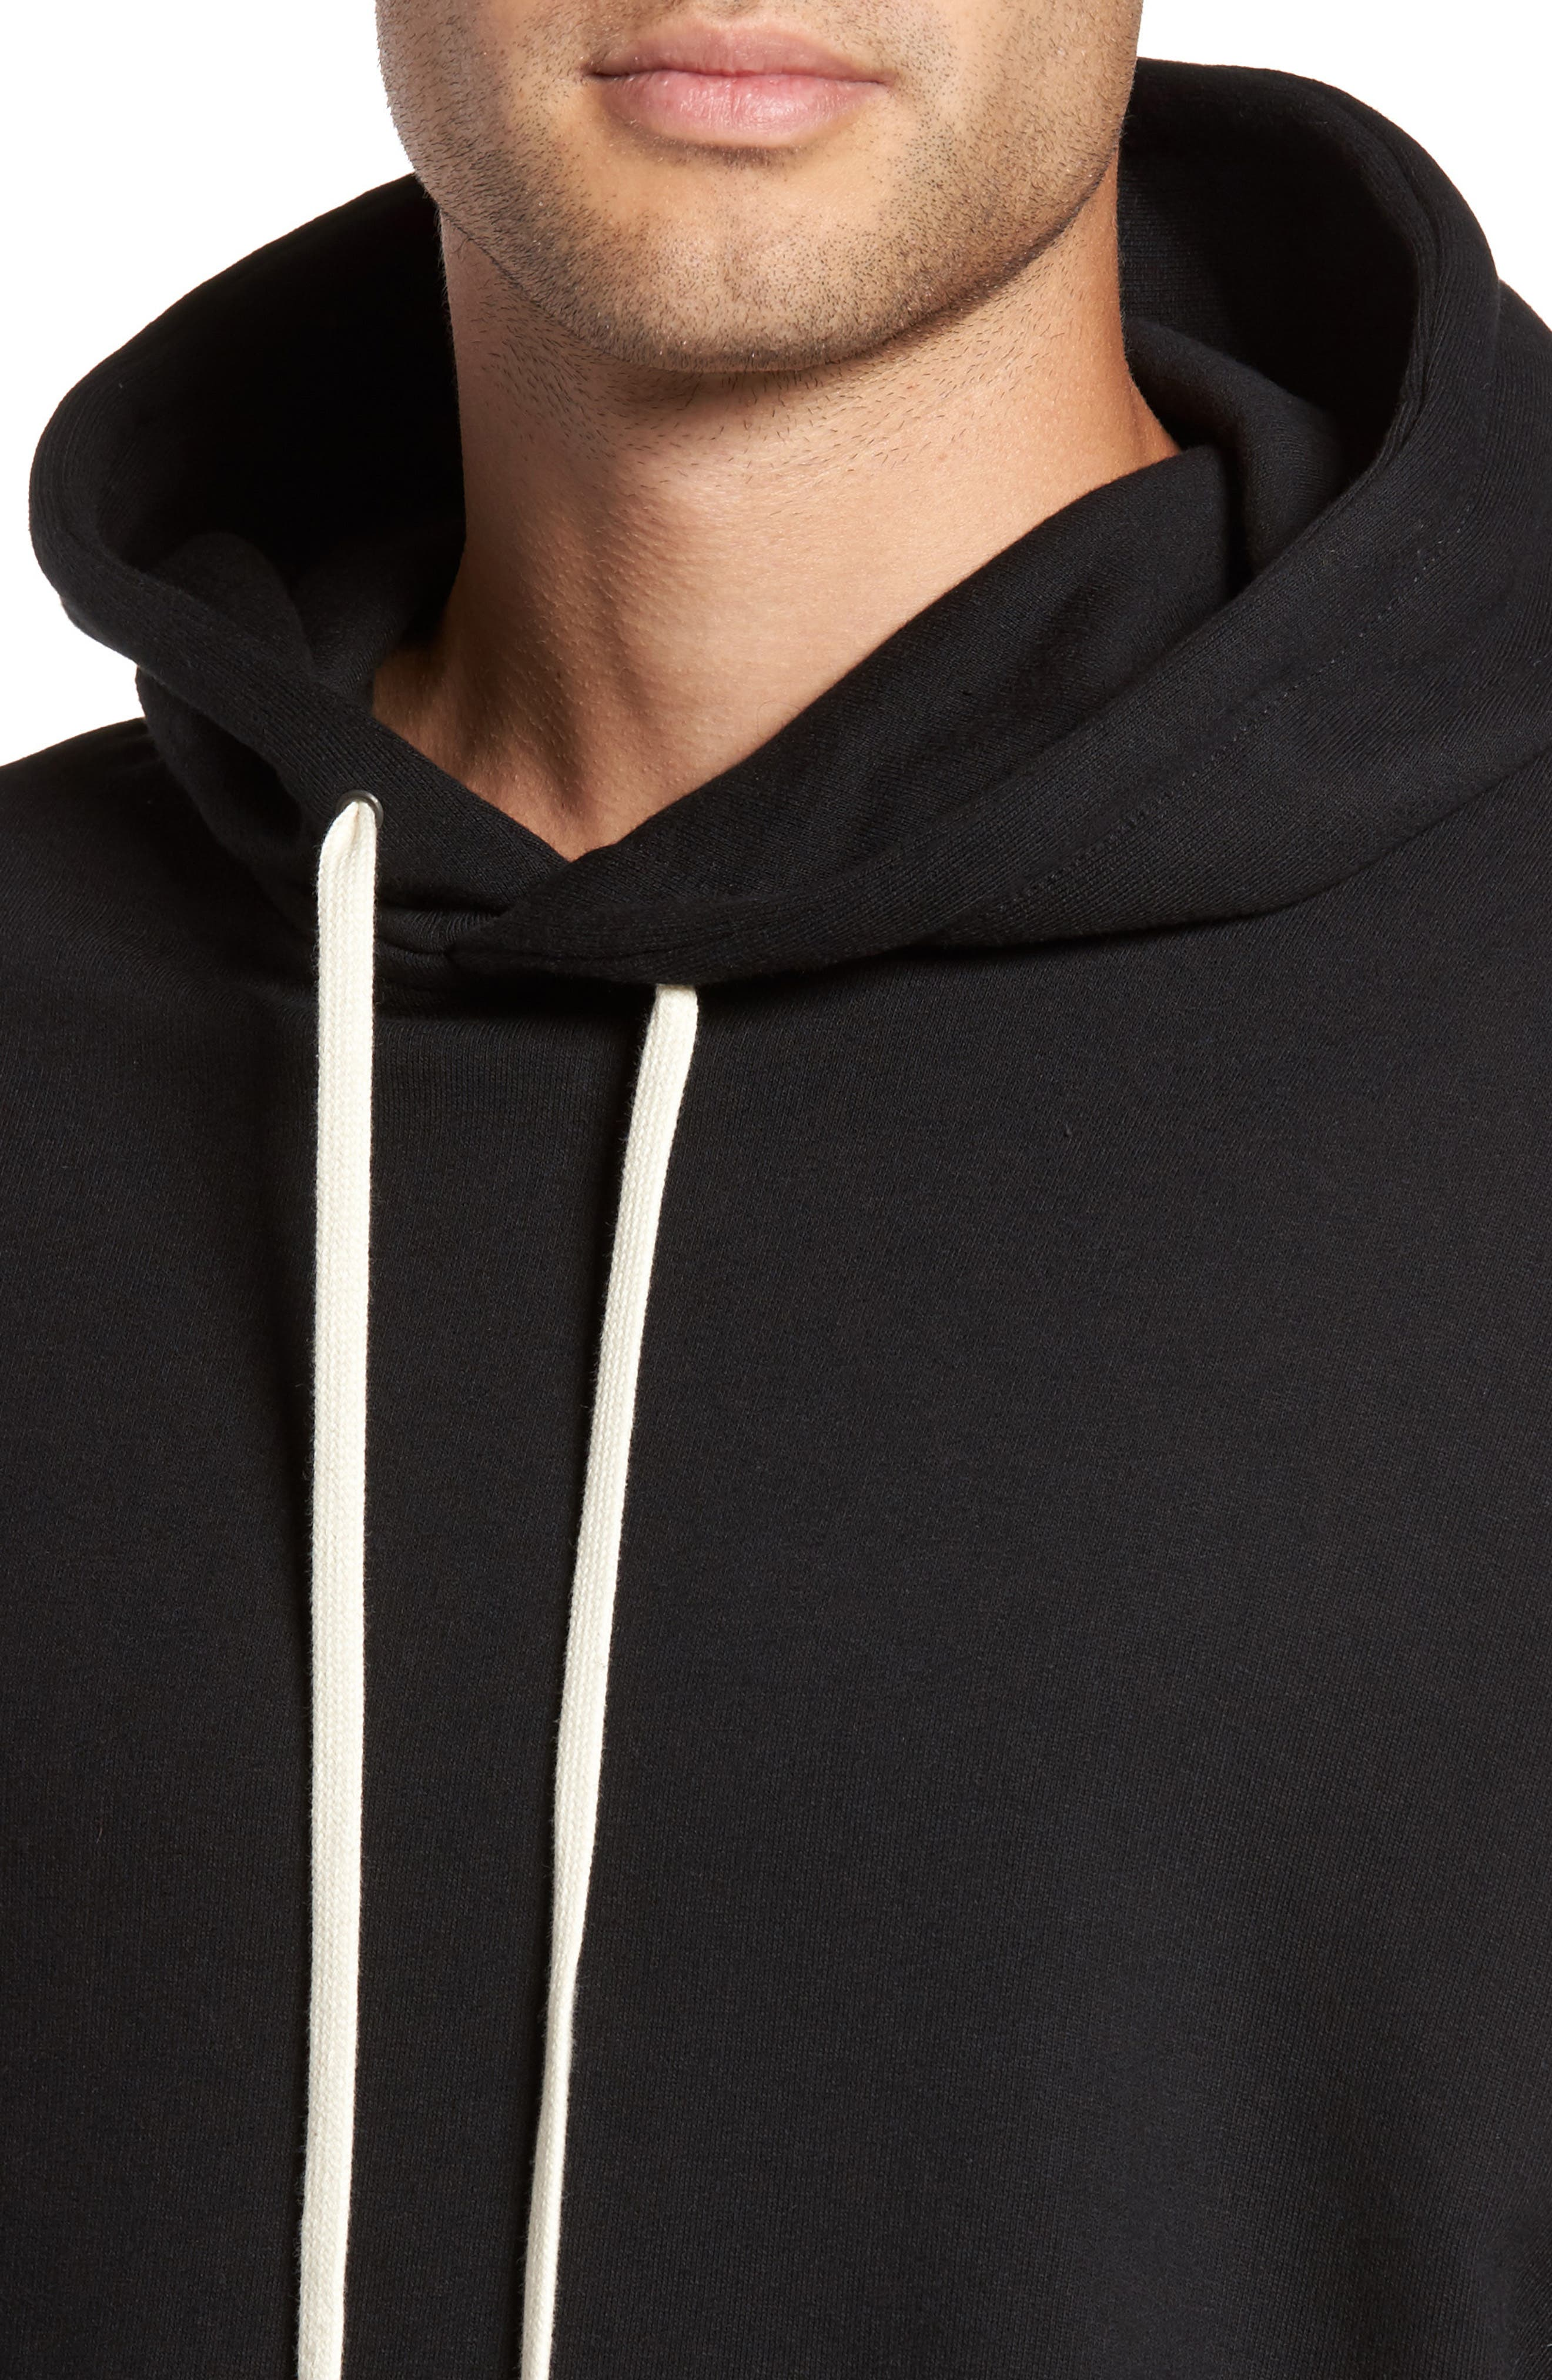 Relaxed Fit Hoodie,                             Alternate thumbnail 4, color,                             Black